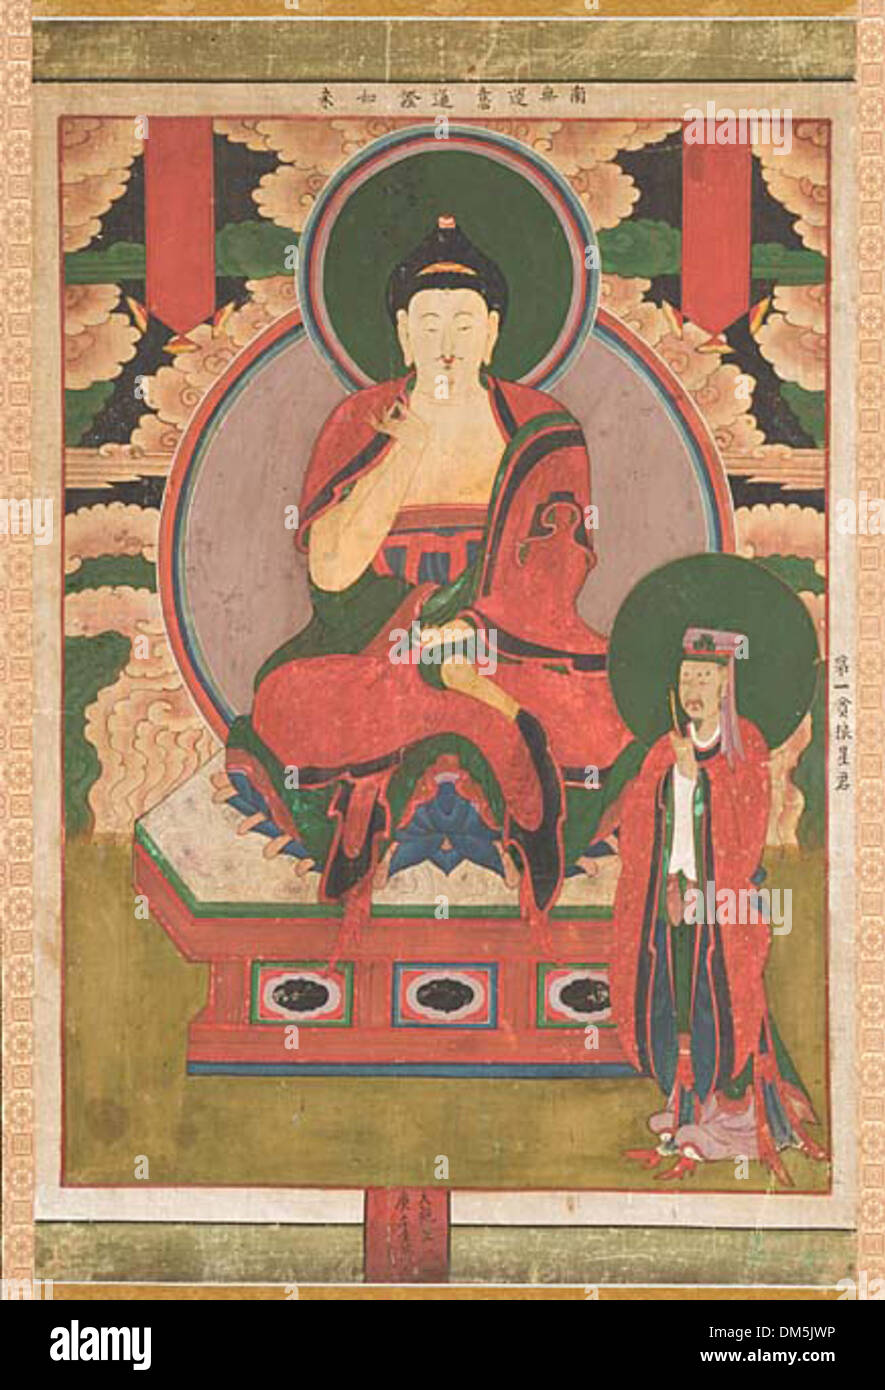 First and Second of the Buddhas of the Seven Stars of the Big Dipper  (Chilseong Yeorae)- Uneui Tongjeung Yeorae with Tamlang Seongun  2000.15.1-.2 (5 of 7)